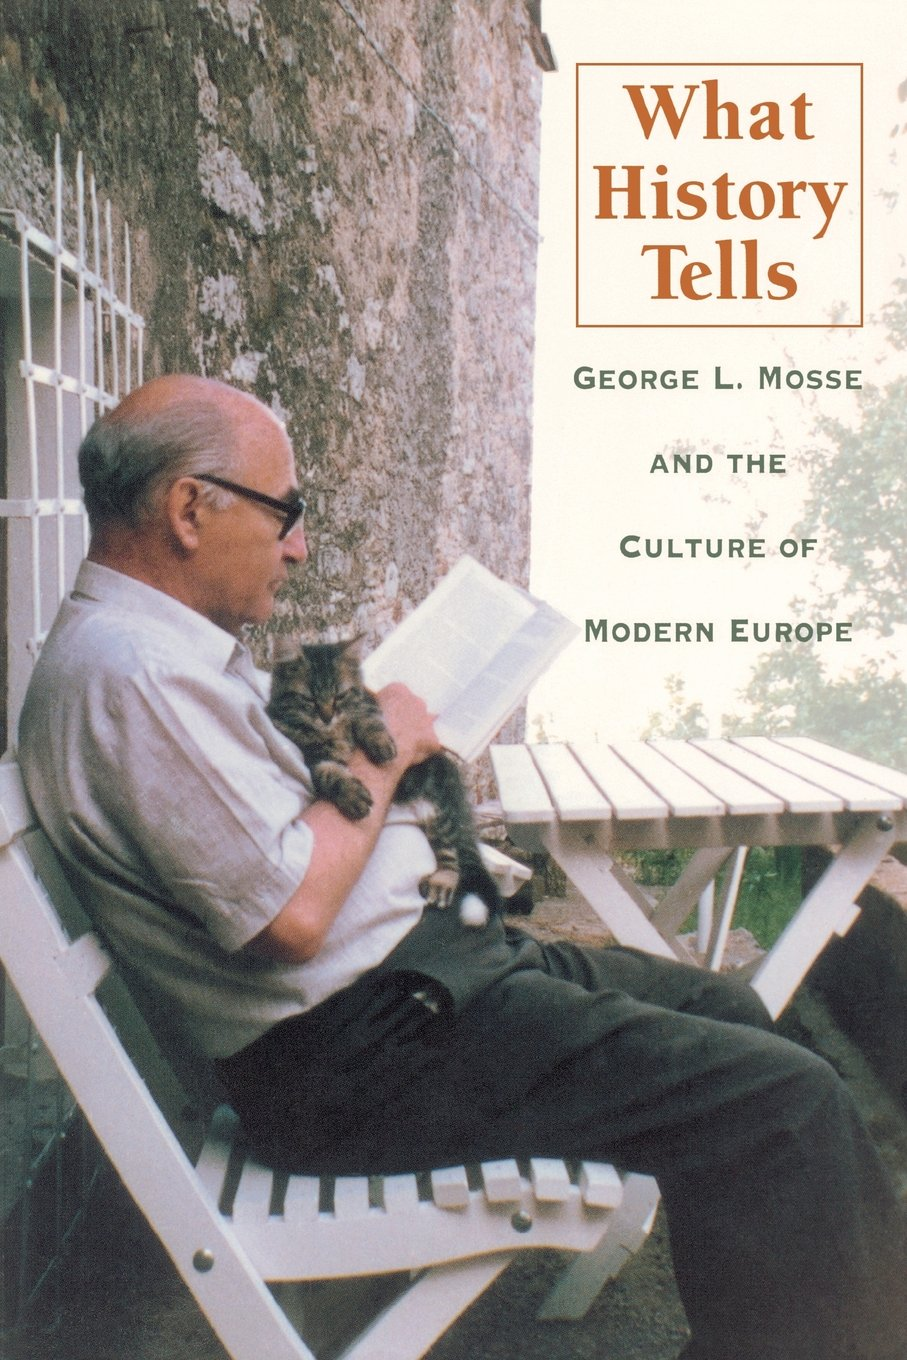 What History Tells: George L. Mosse and the Culture of Modern Europe (George L. Mosse Series in Modern European Cultural and Intellectual History) PDF